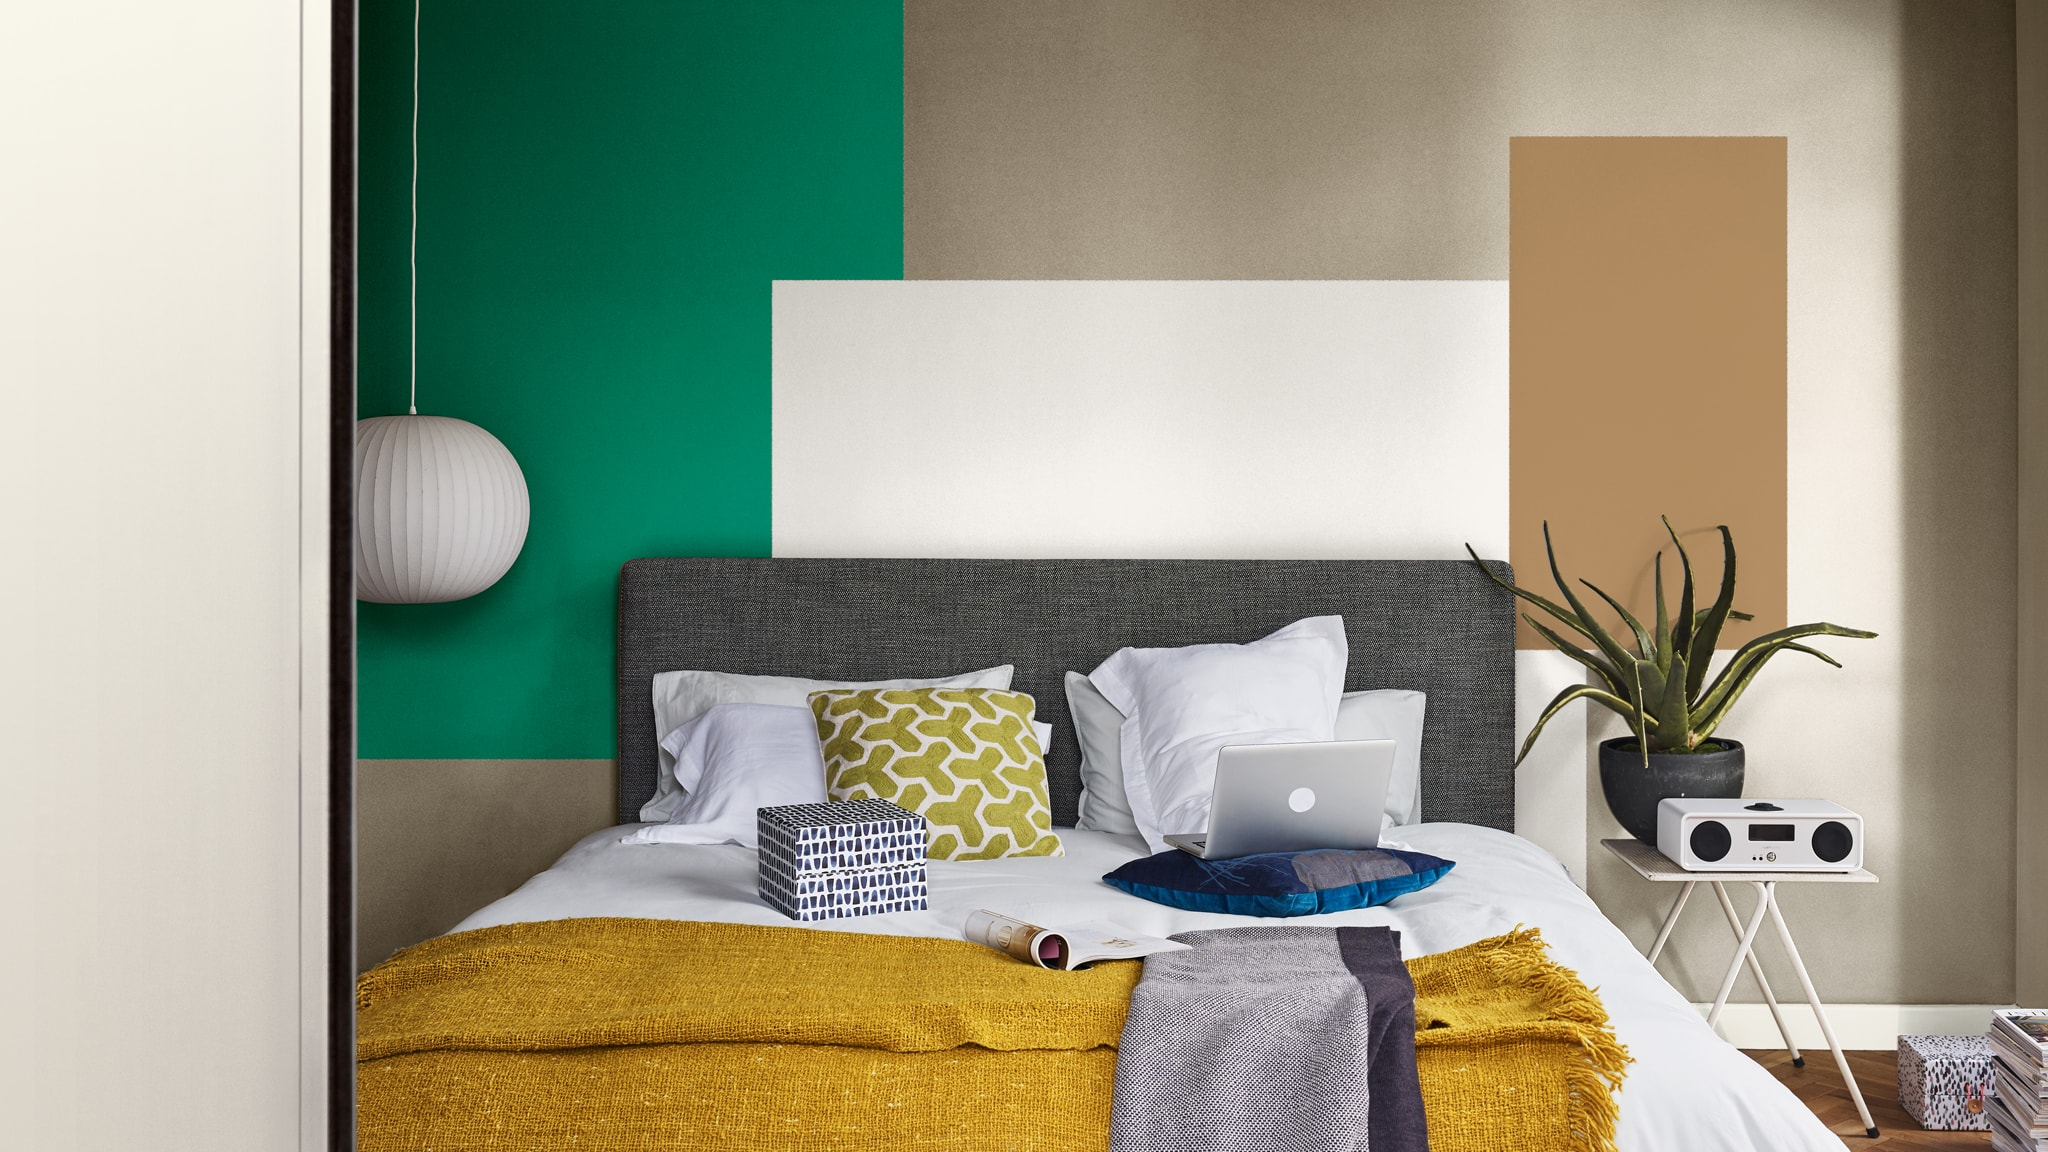 Deco-Paints-Colour-Futures-Colour-of-the-Year-2019-A-place-to-act-Bedroom-Inspiration-39